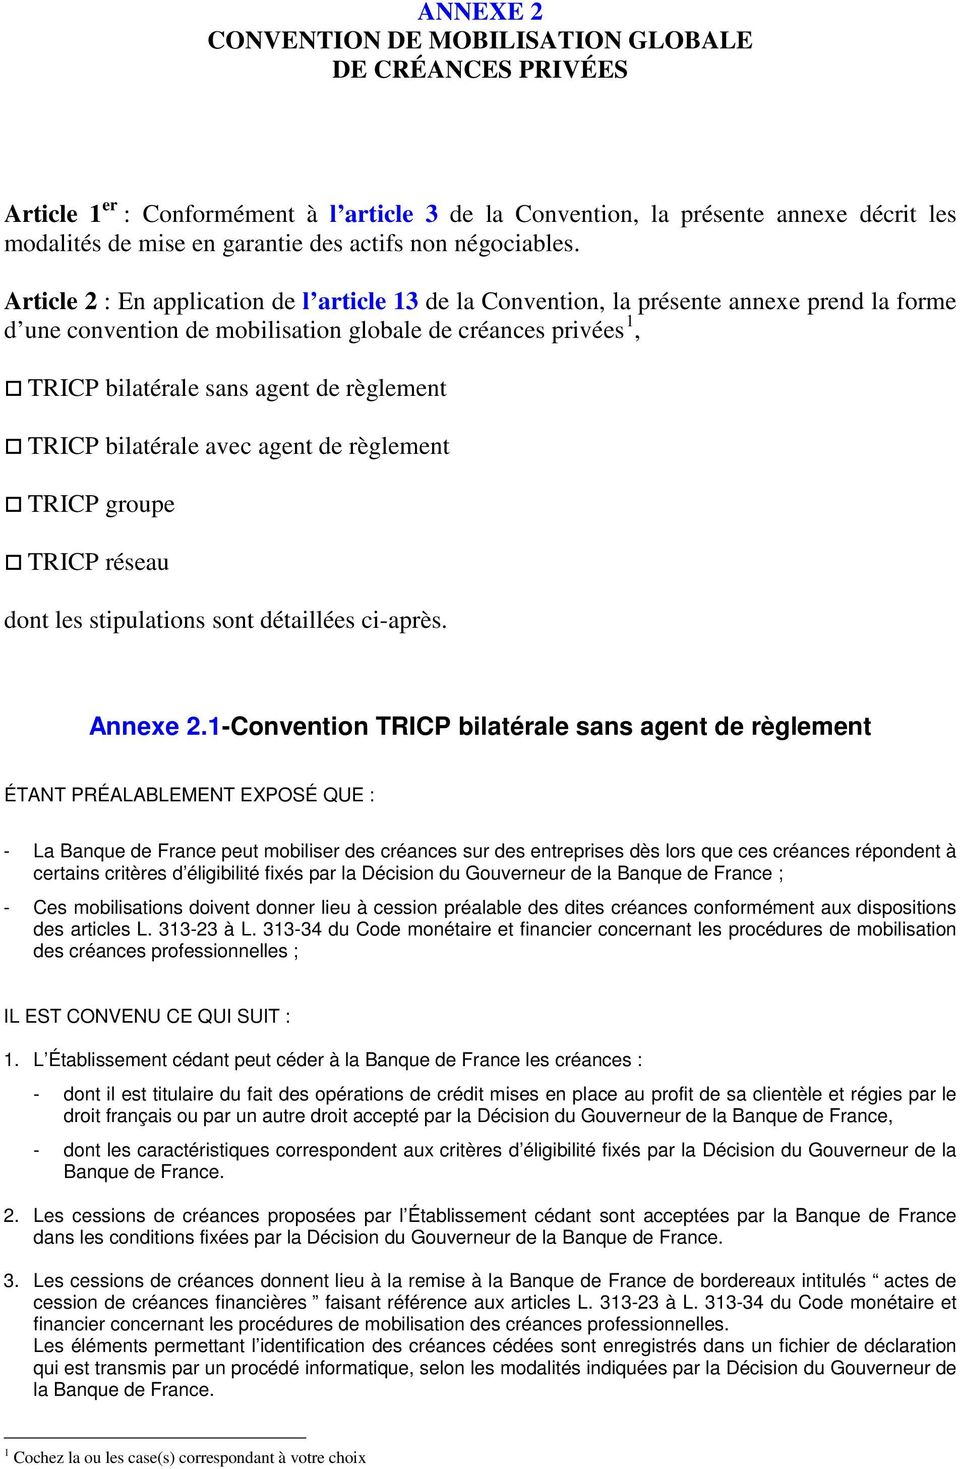 Article 2 : En application de l article 13 de la Convention, la présente annexe prend la forme d une convention de mobilisation globale de créances privées 1, TRICP bilatérale sans agent de règlement